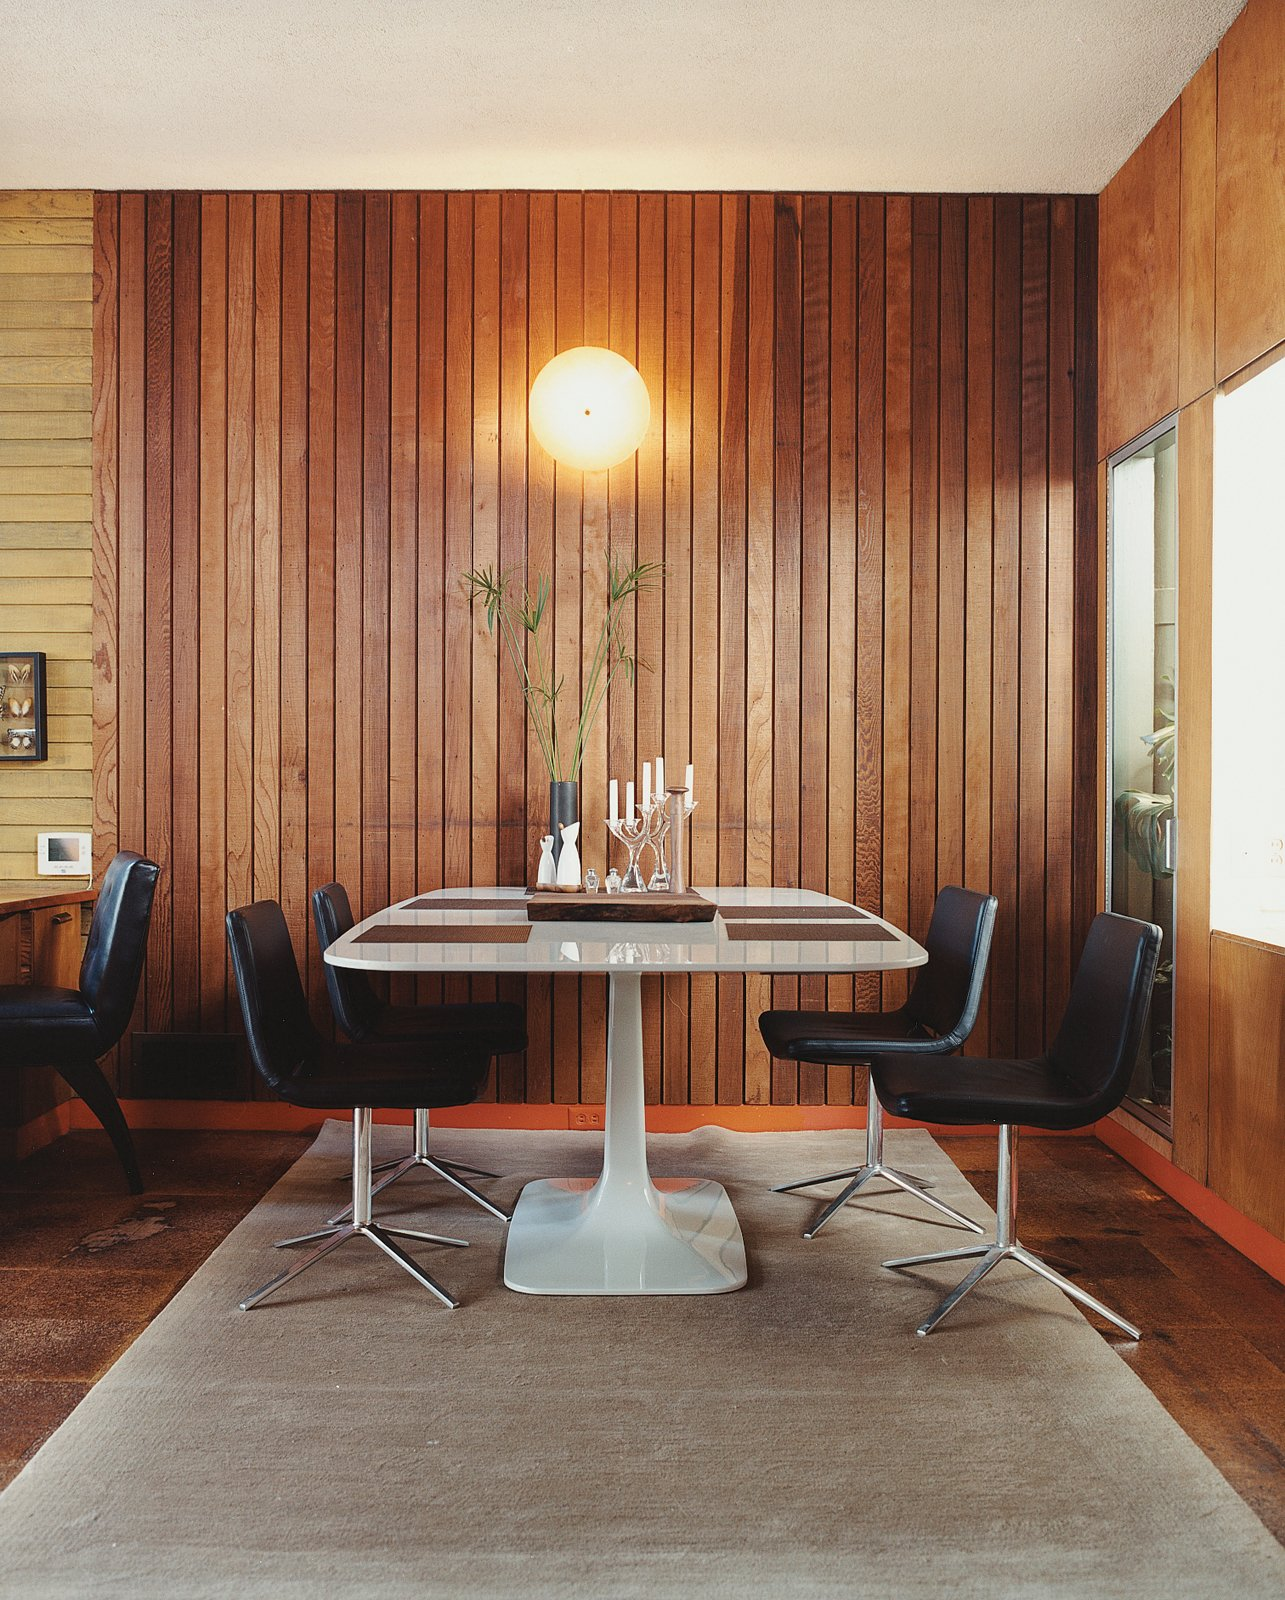 In the dining area, Metropolitan side chairs by Jeffrey Bernett for B&B Italia surround a Surf Table designed by Carlo Colombo for Zanotta. Tagged: Dining Room, Chair, Table, Porcelain Tile Floor, and Wall Lighting.  Midcentury Homes by Dwell from Mid-Century Mash-Up